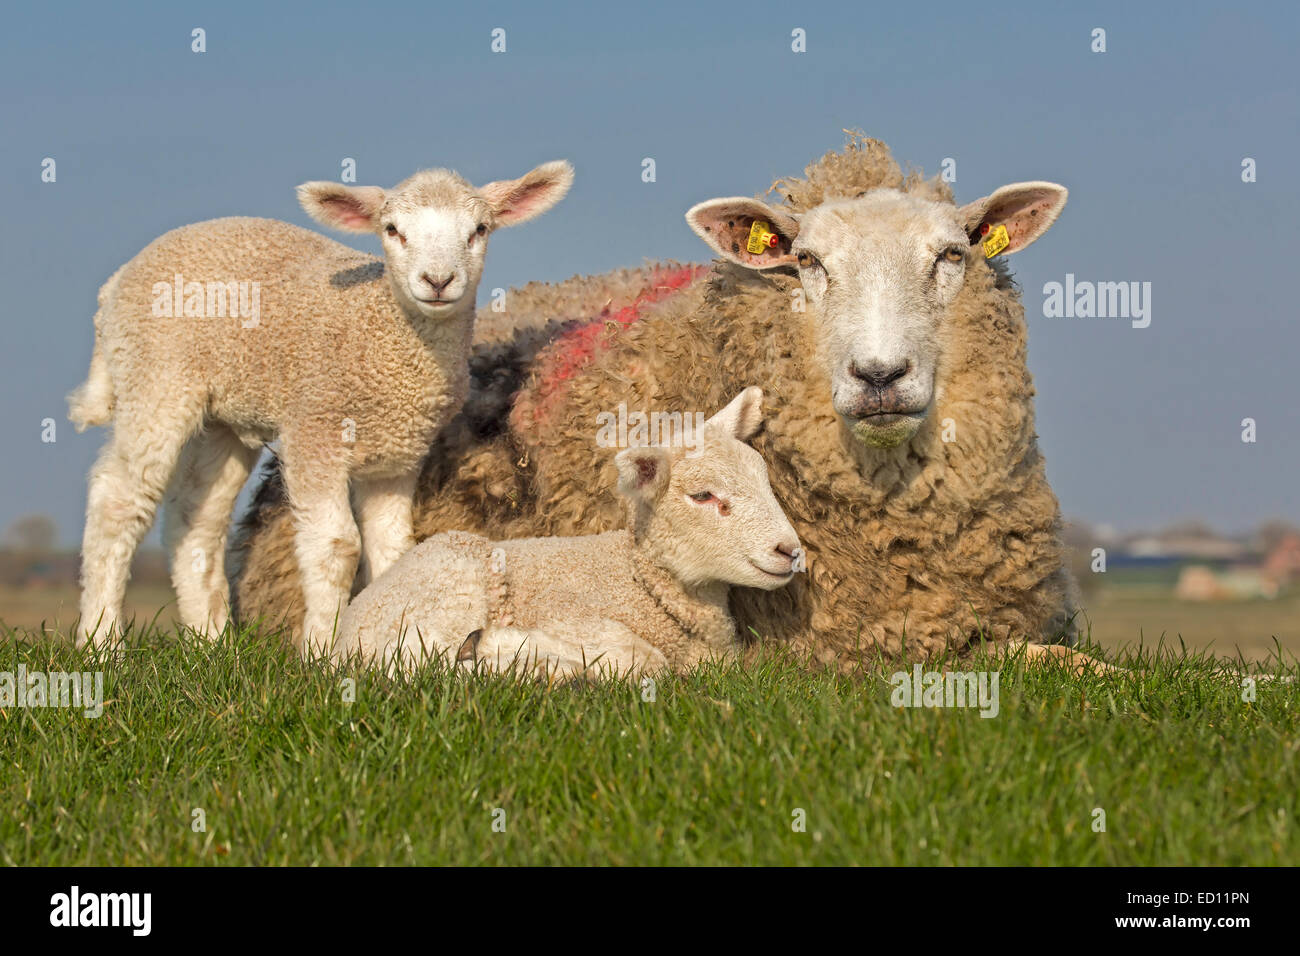 Sheep with young animals, North Frisia, Schleswig-Holstein, Germany, Europe - Stock Image